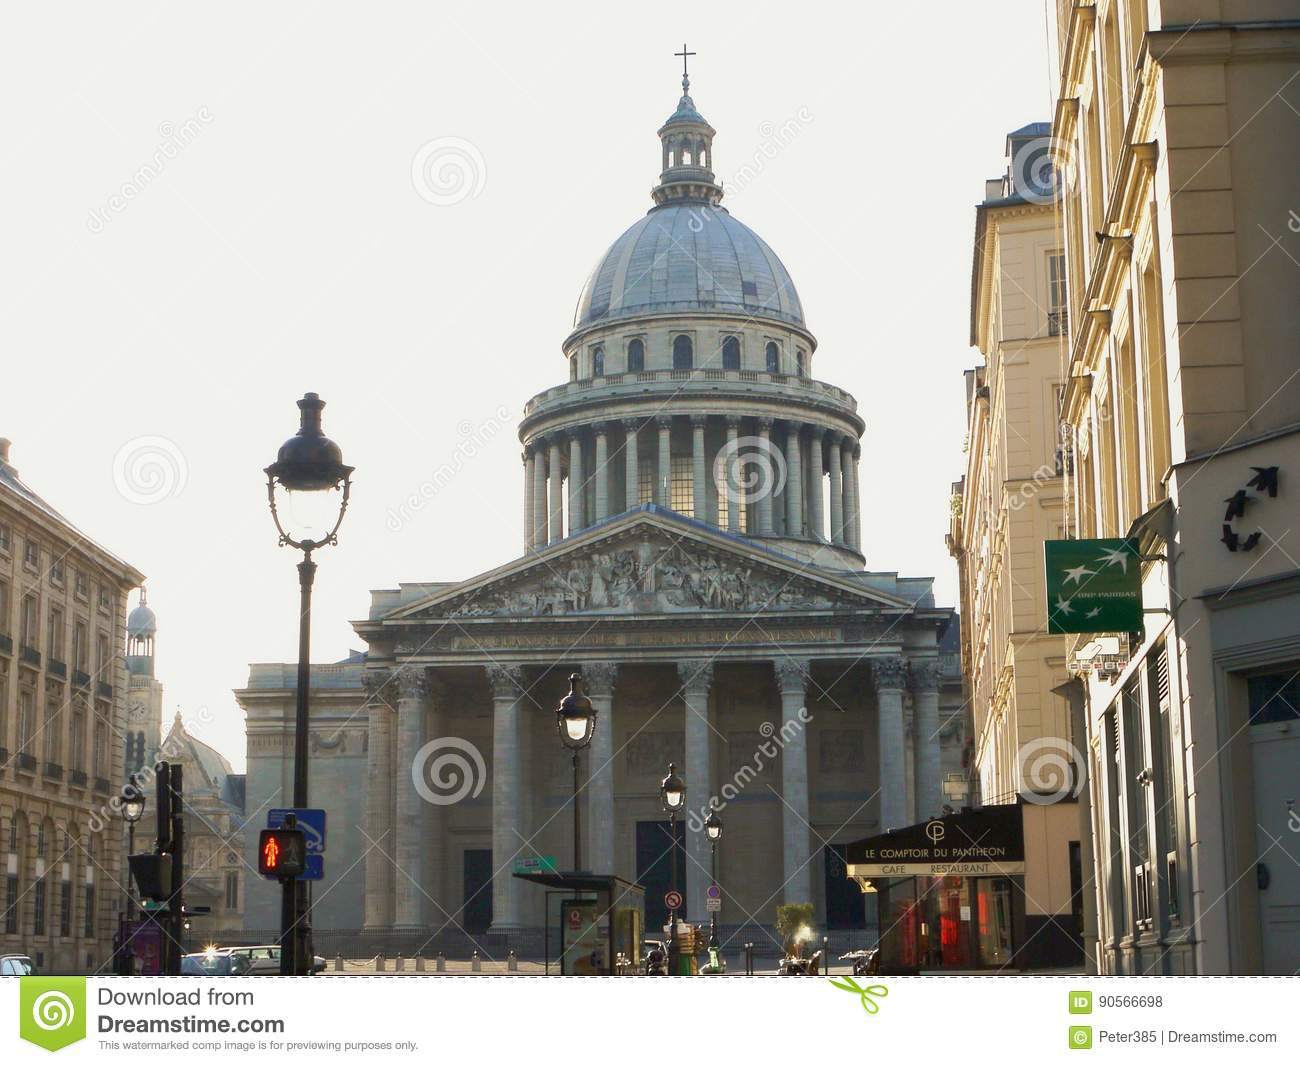 ff2b832f0 The Panthéon - Paris editorial stock photo. Image of monument - 90566698